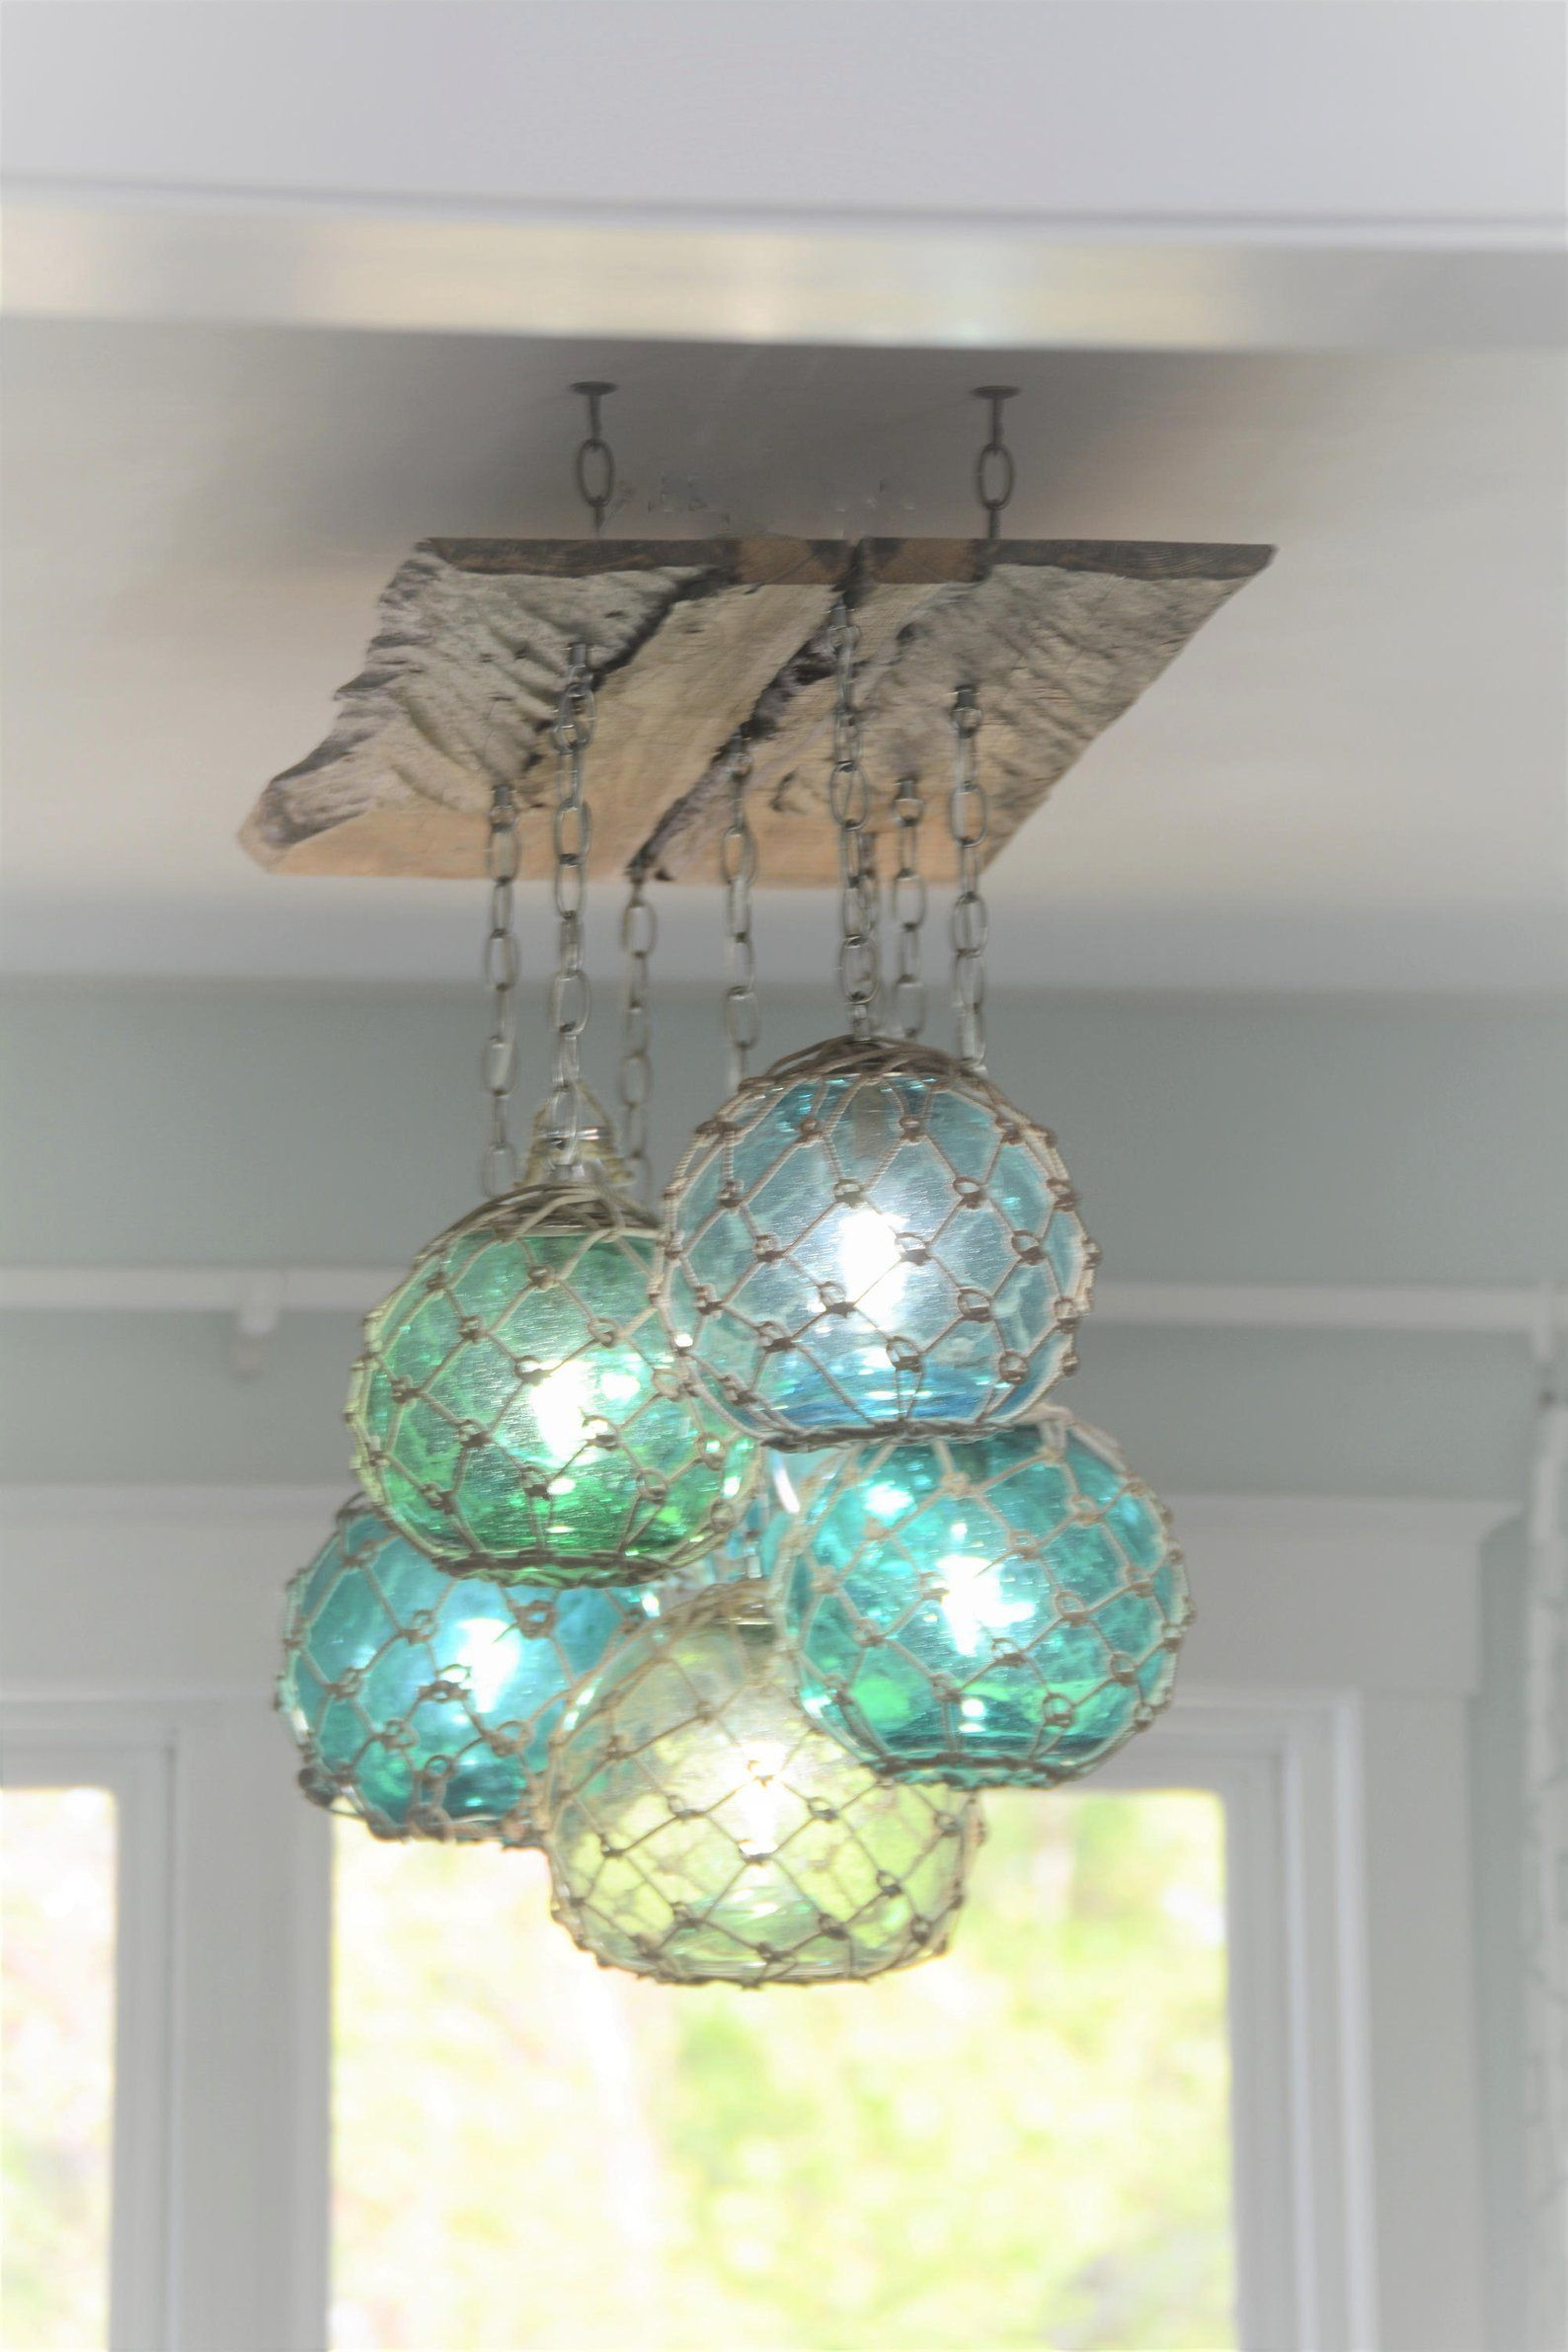 Glass Fishing Float Light Fixture Chandelier With 7 Floats Etsy Beach House Decor Glass Fishing Floats Cottage Decor